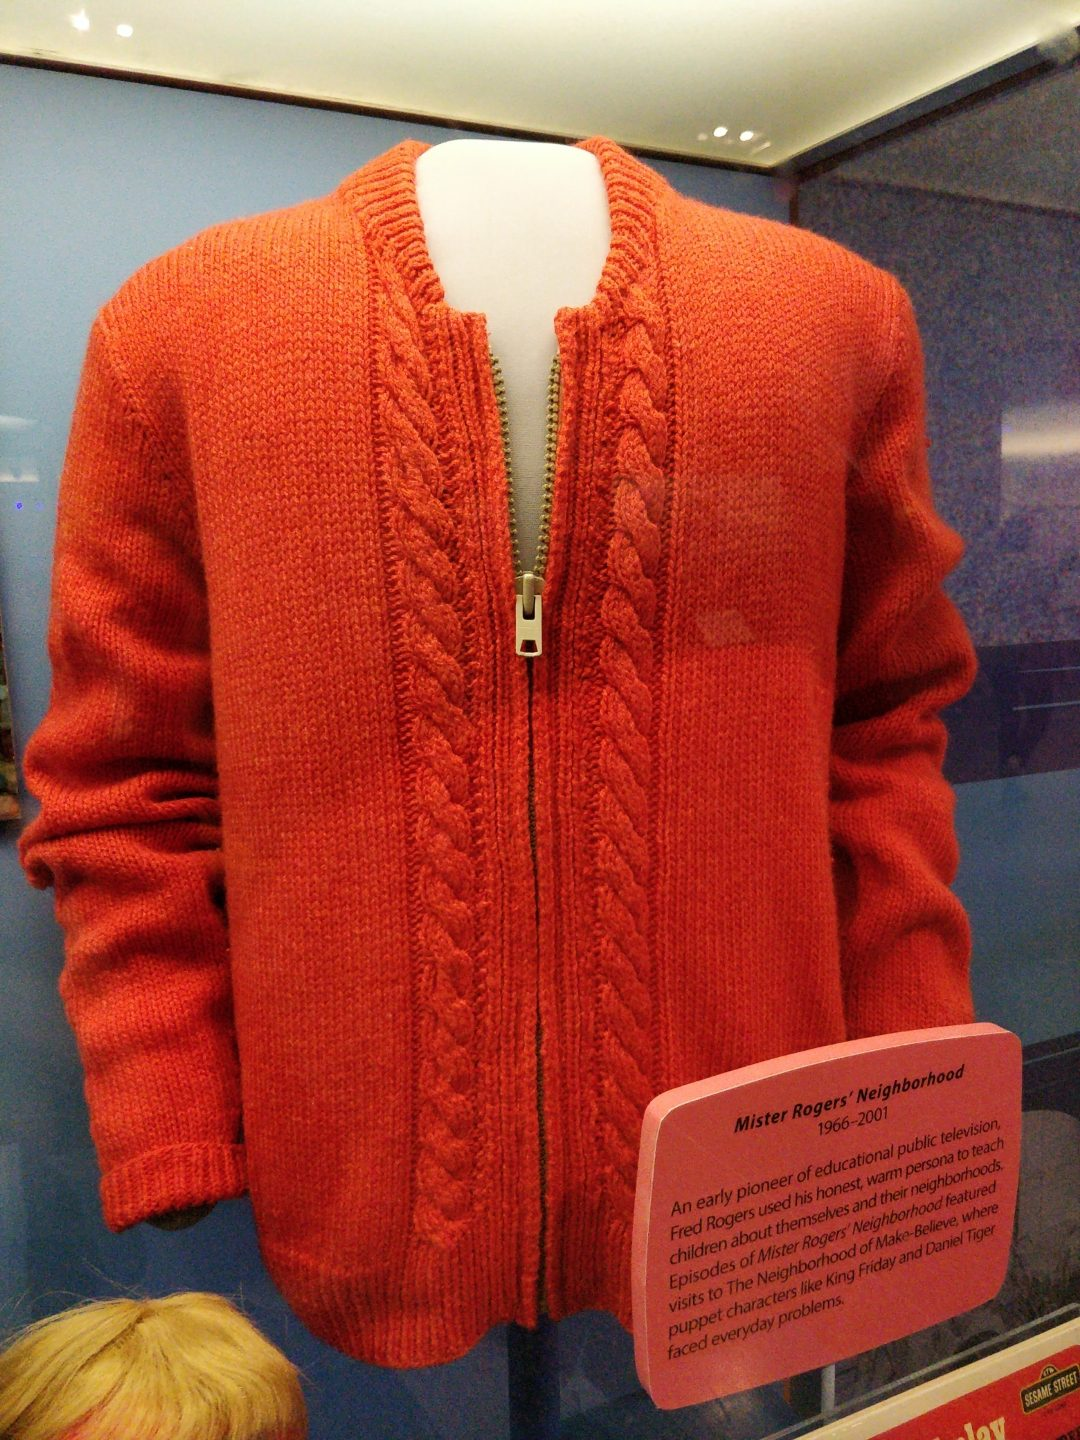 Mr. Rogers's red cardigan sweater with cables on either side of the zipper